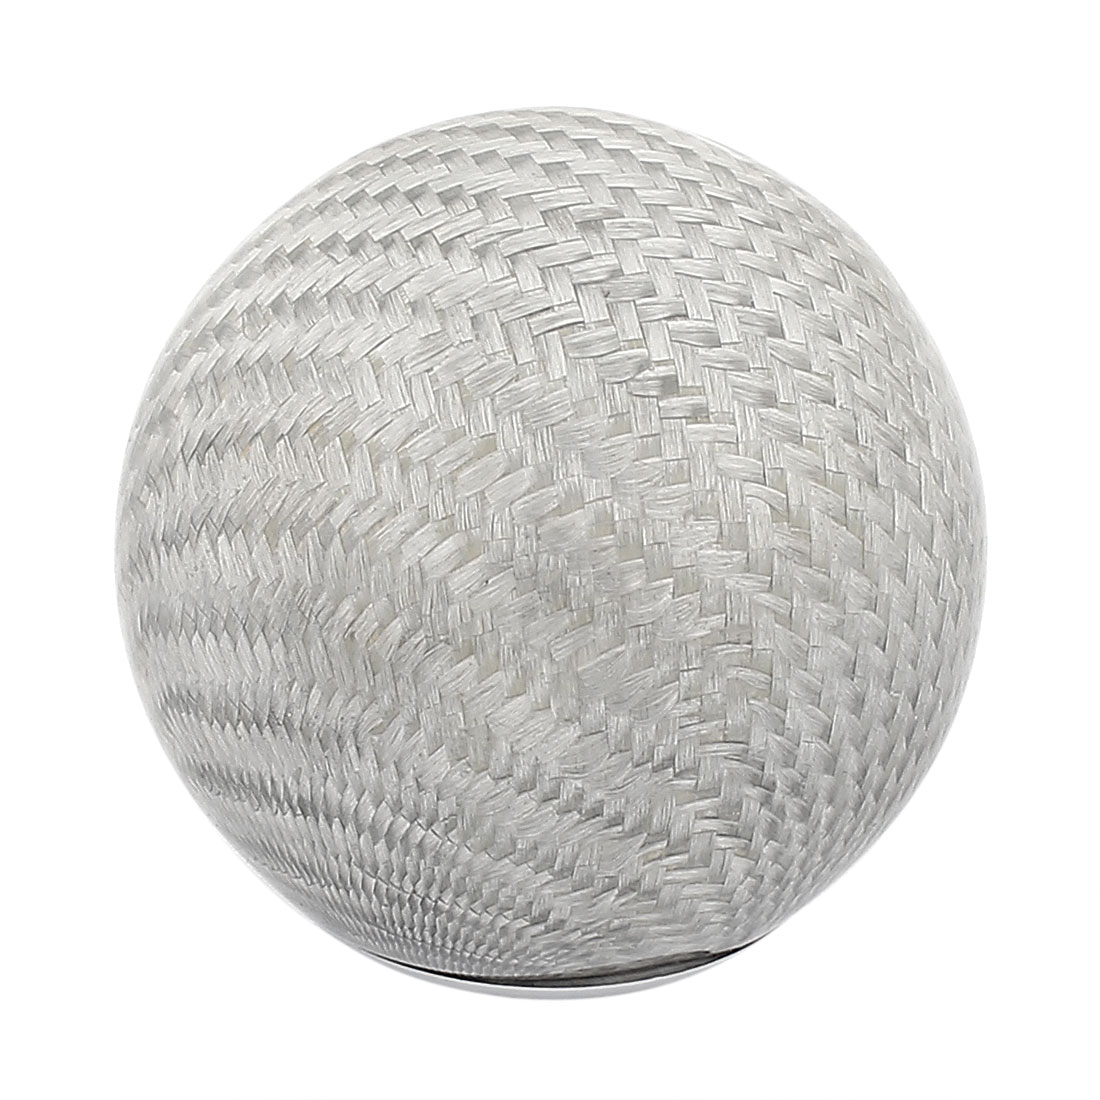 Silver Tone Carbon Fiber Round Ball Shape Car Gear Shift Knob Handle Protector